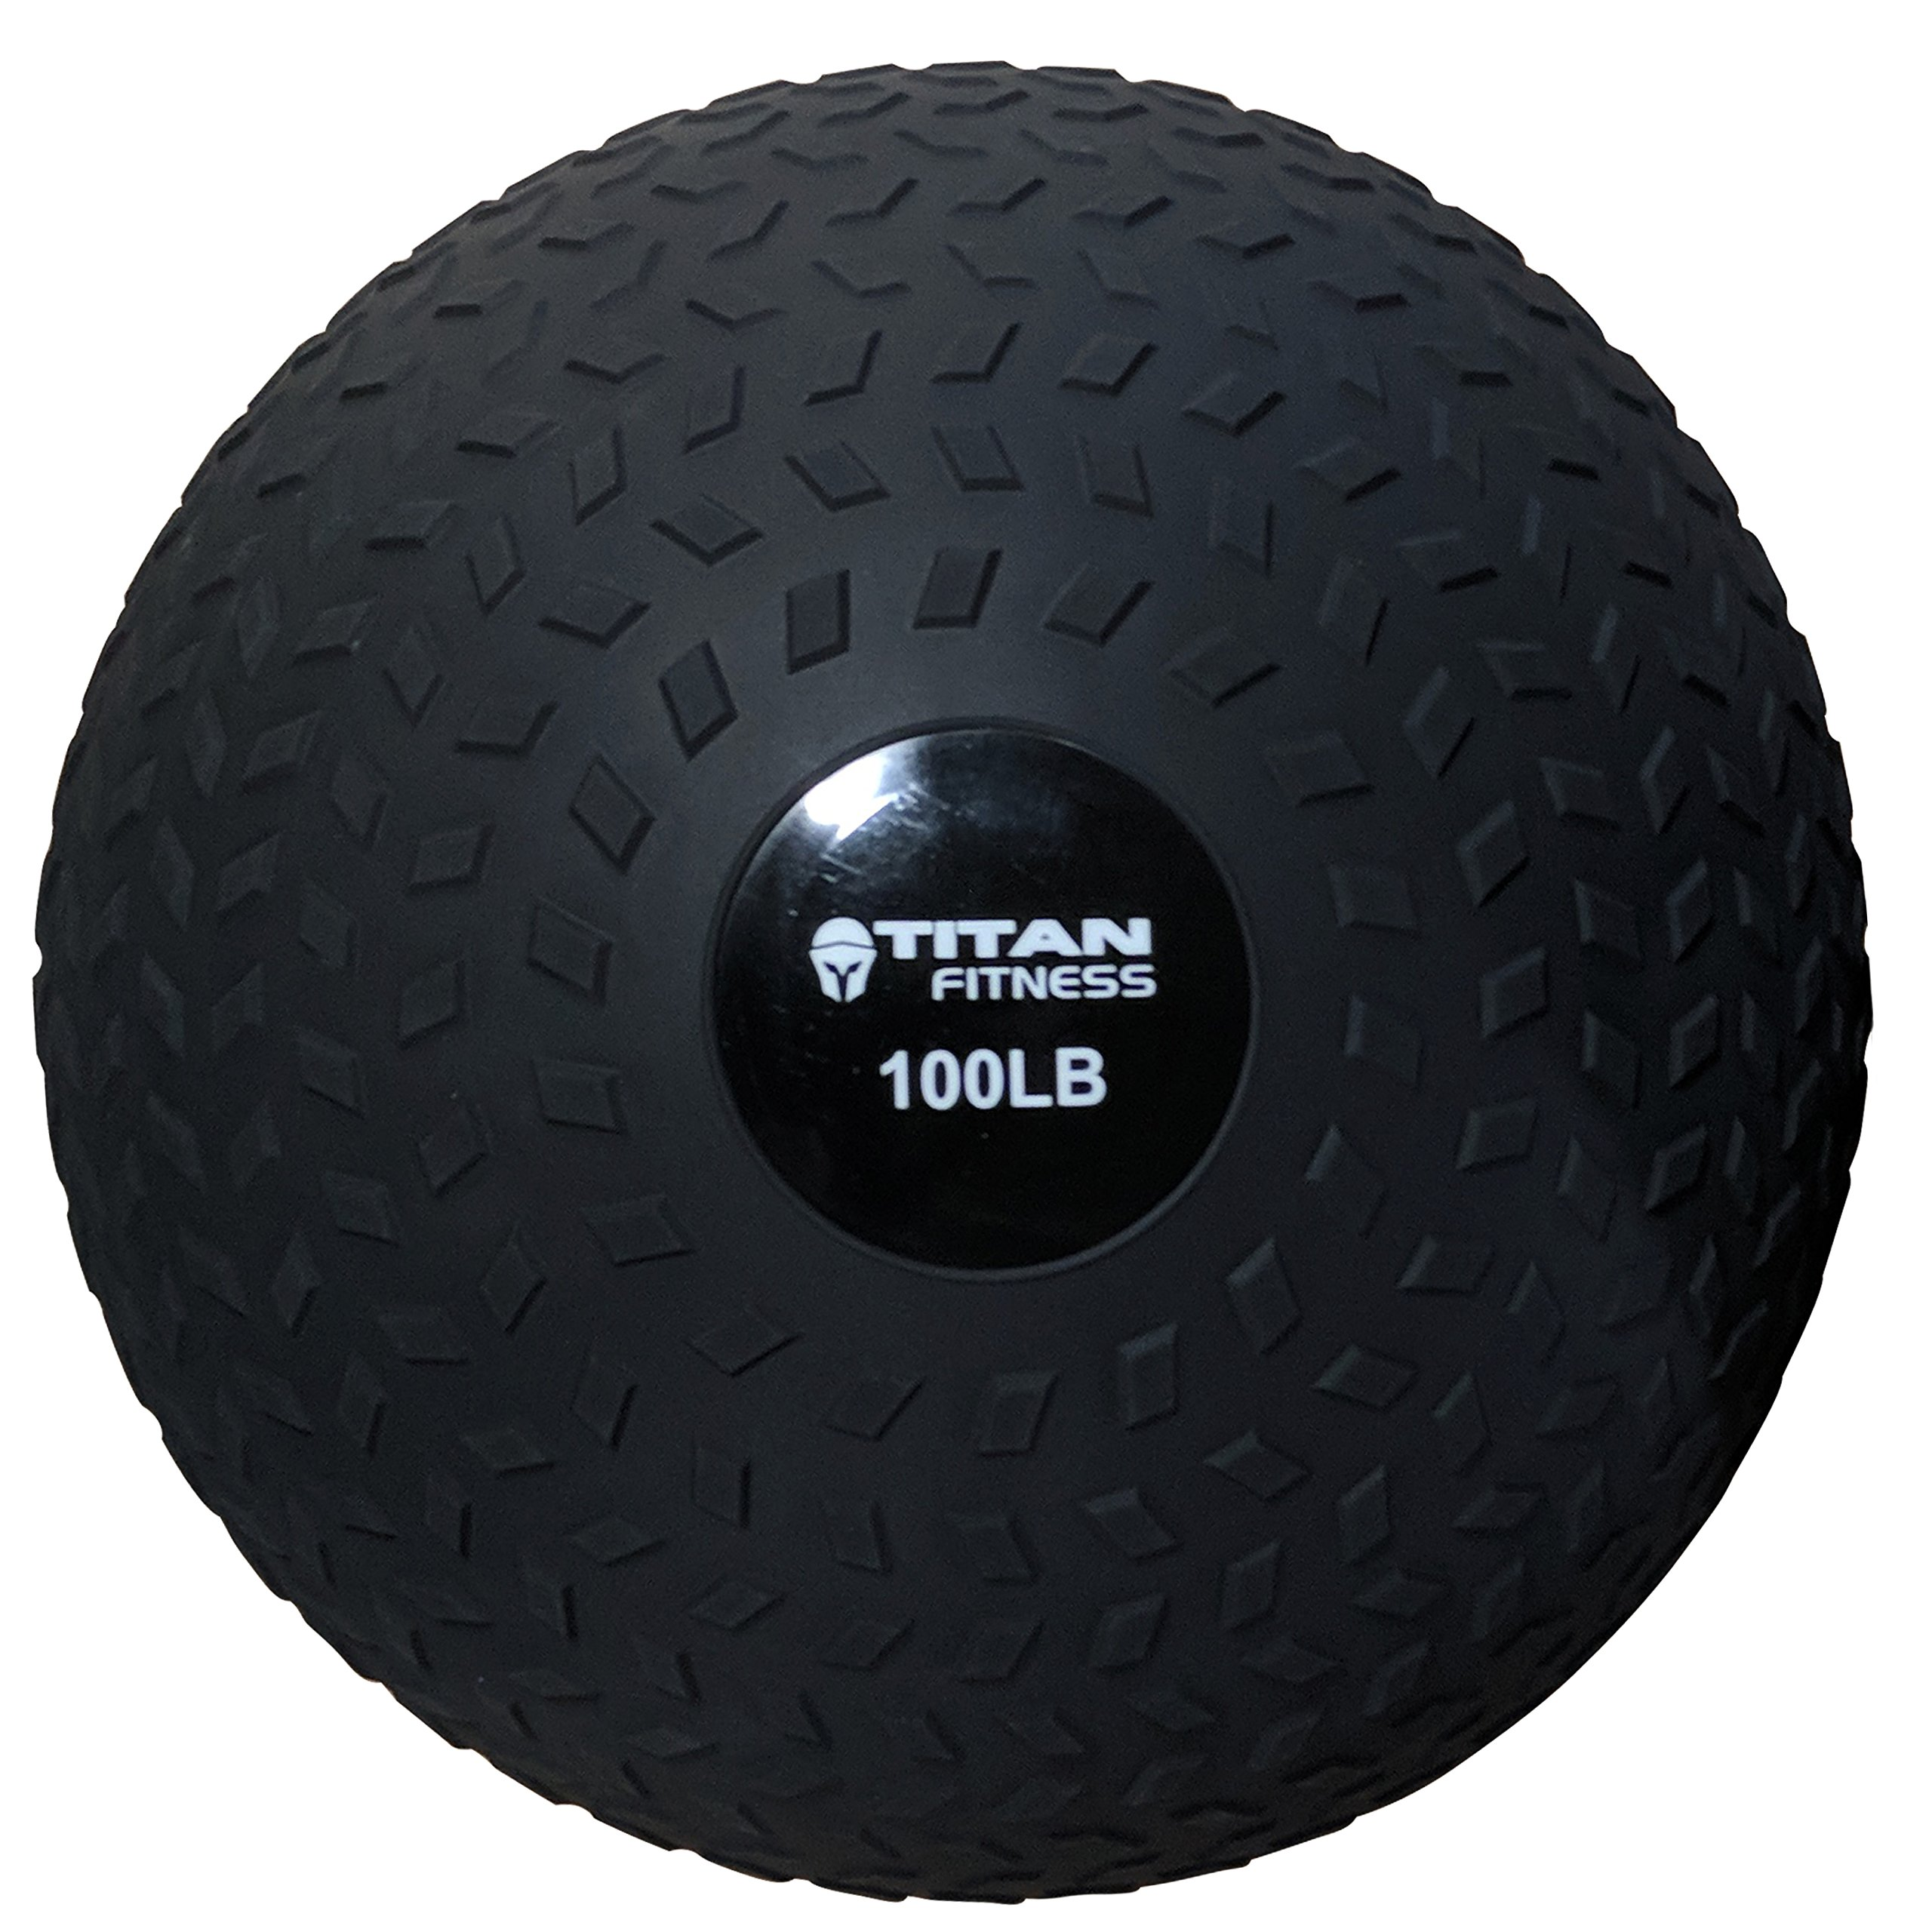 TITAN FITNESS 100LB Slam Spike Ball Rubber Exercise Weight Workout